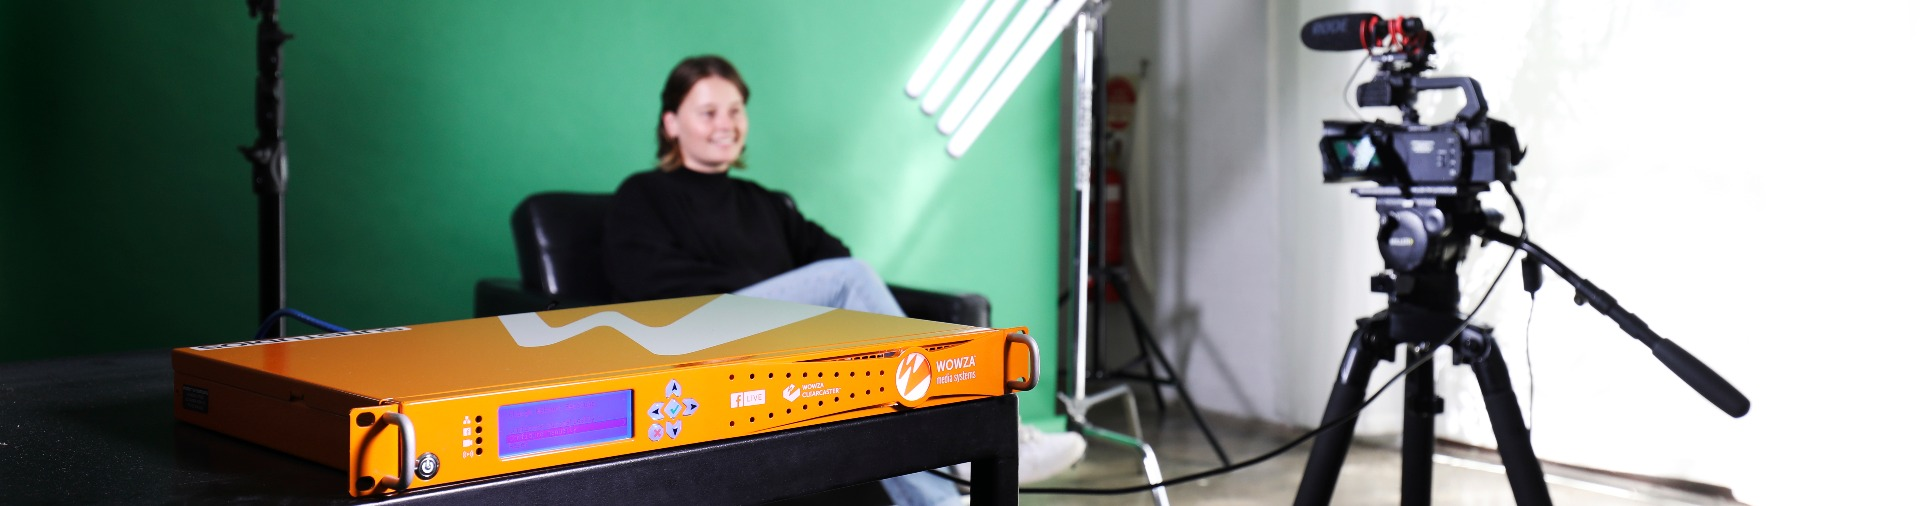 woman-sitting-in-front-of-a-green-screen-being-filmed-under-lighting-wowser-clearcaster-live-streaming-device-in-foreground